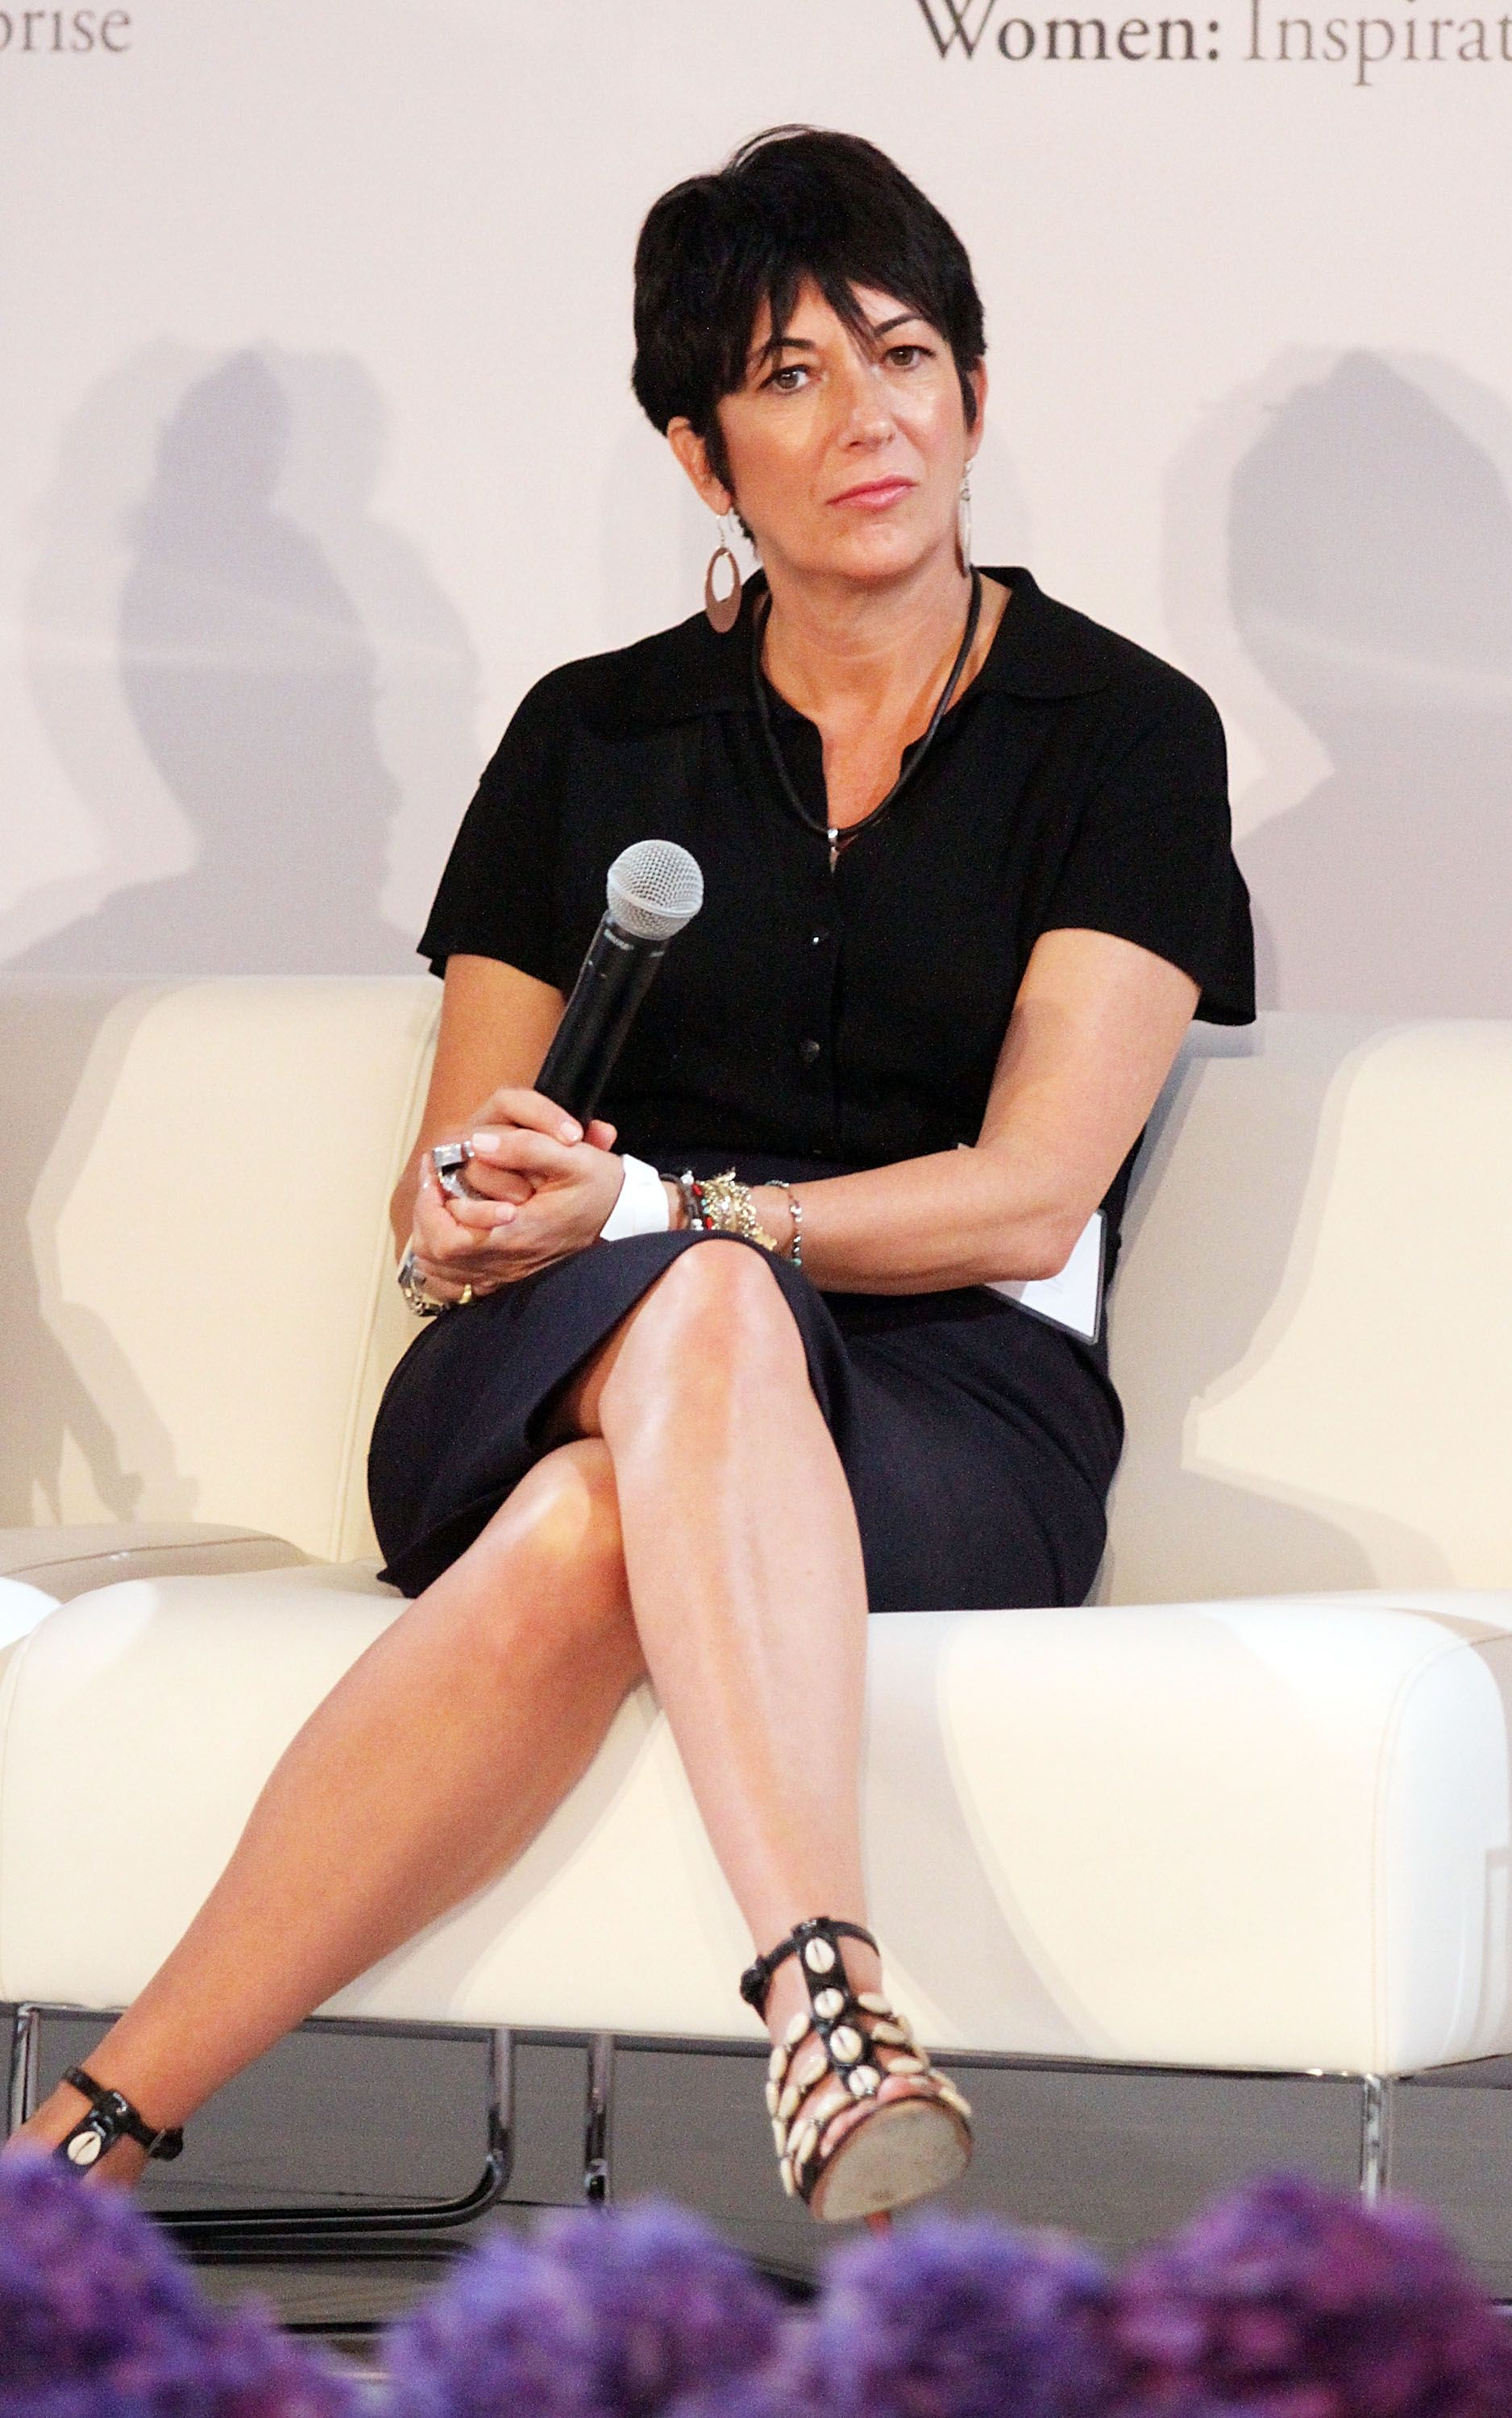 Rumors of Ghislaine Maxwell's TV Appearance May Be Overstated